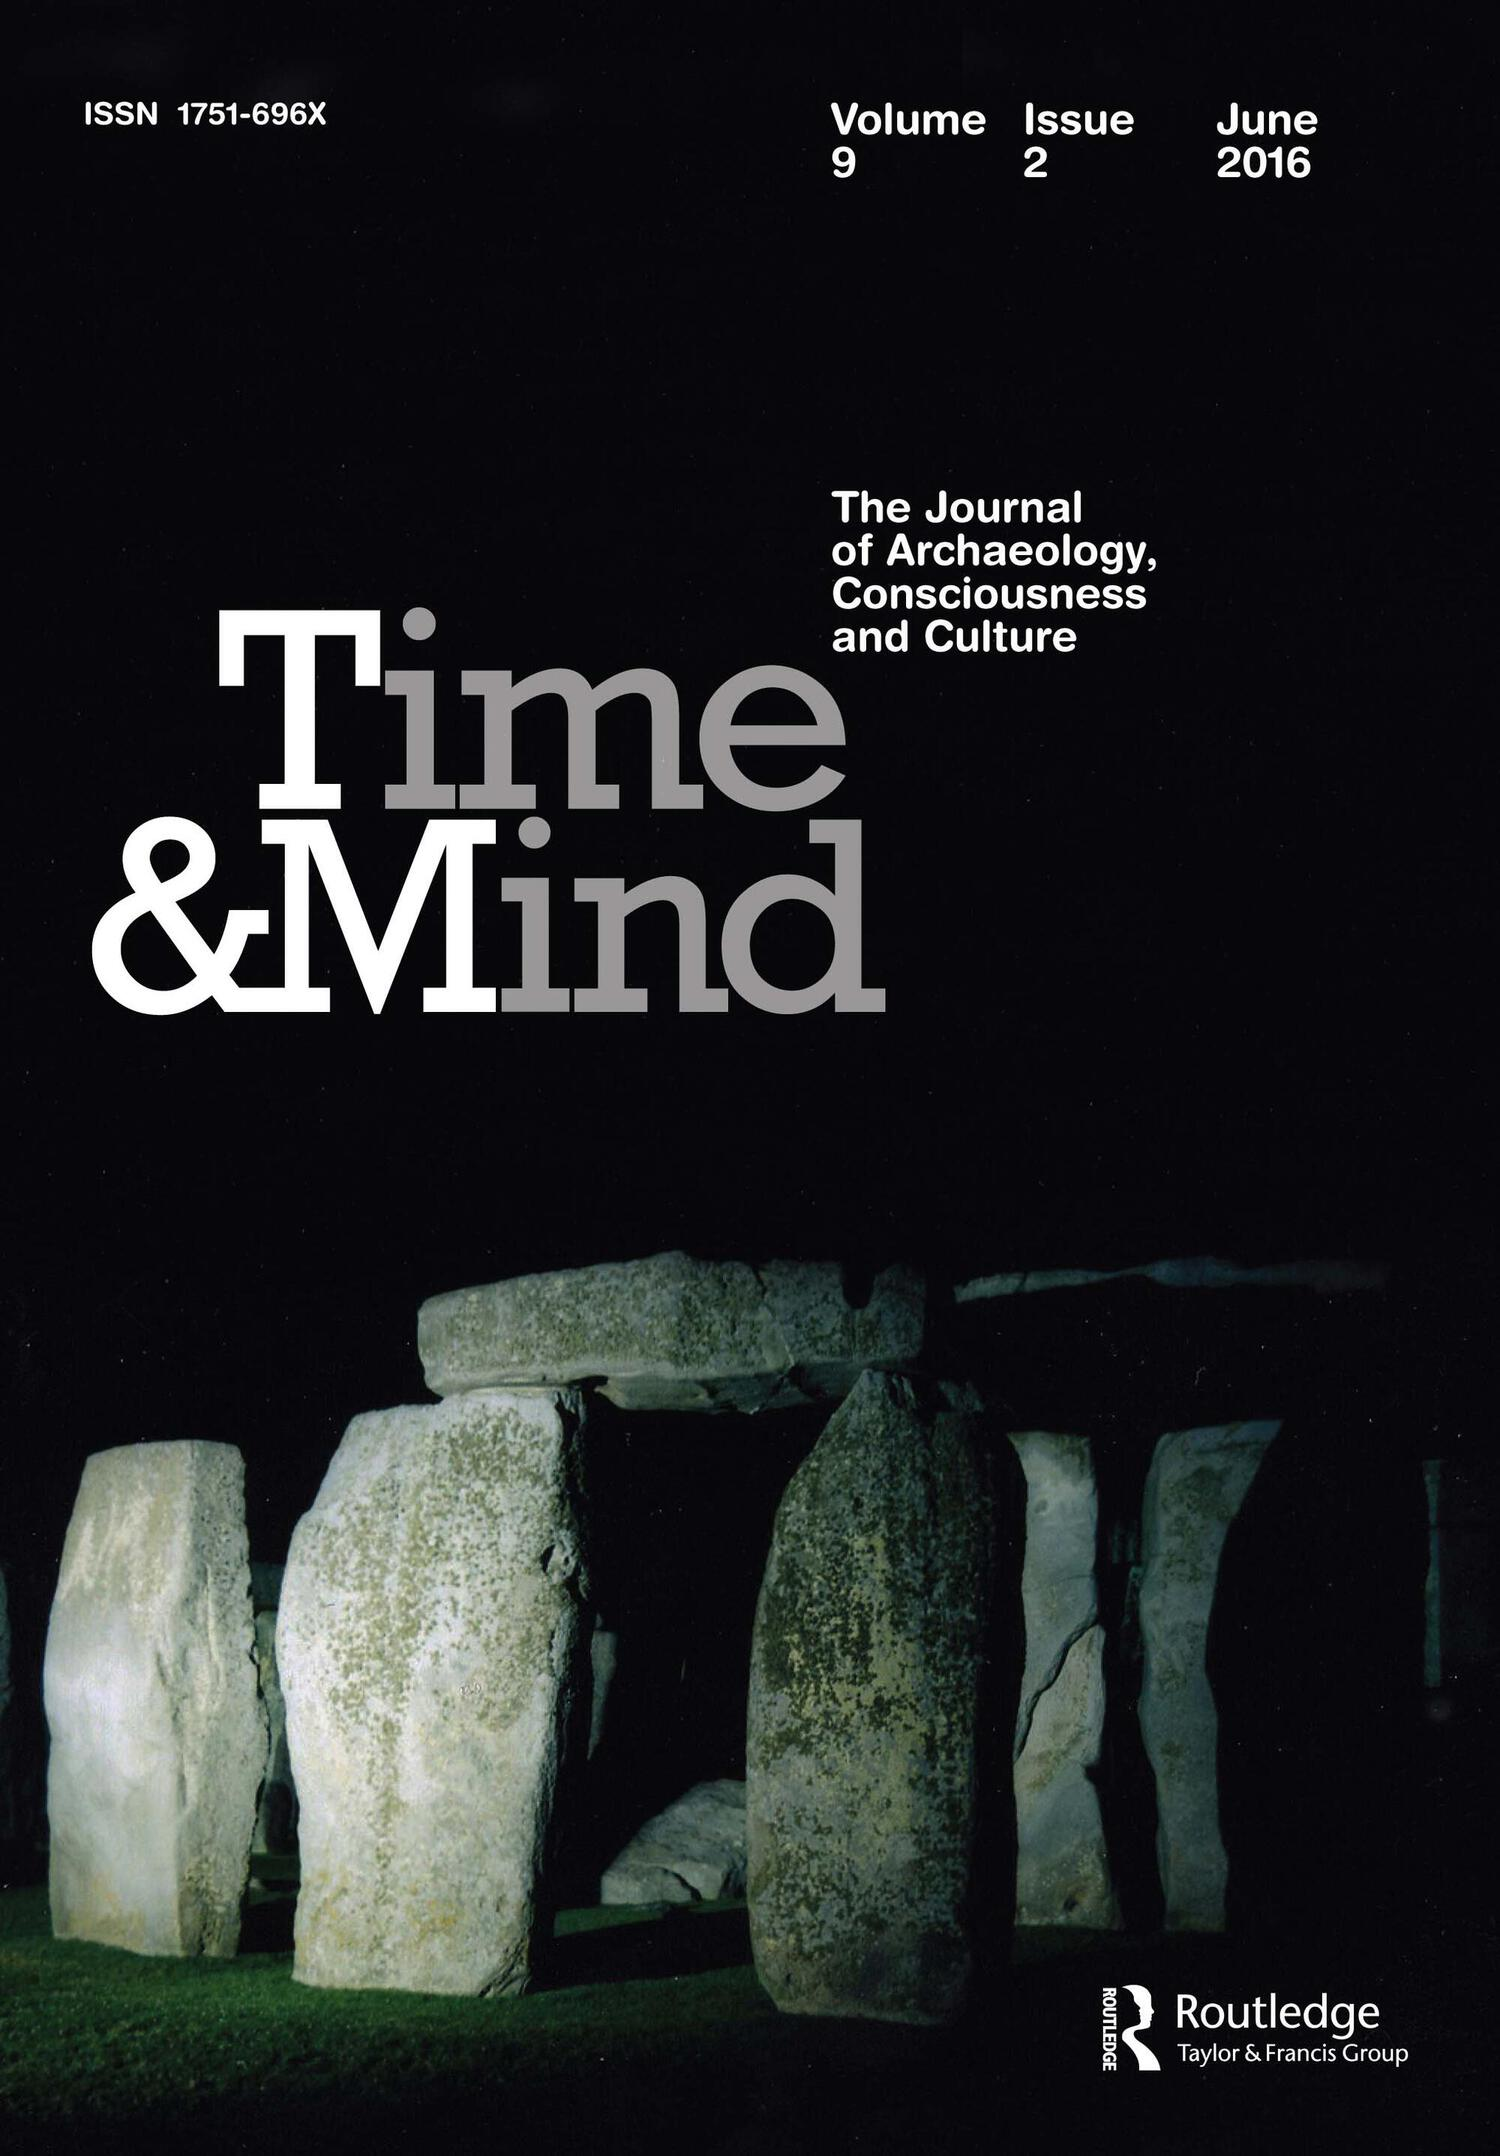 Time & Mind Volume 9 Issue 2